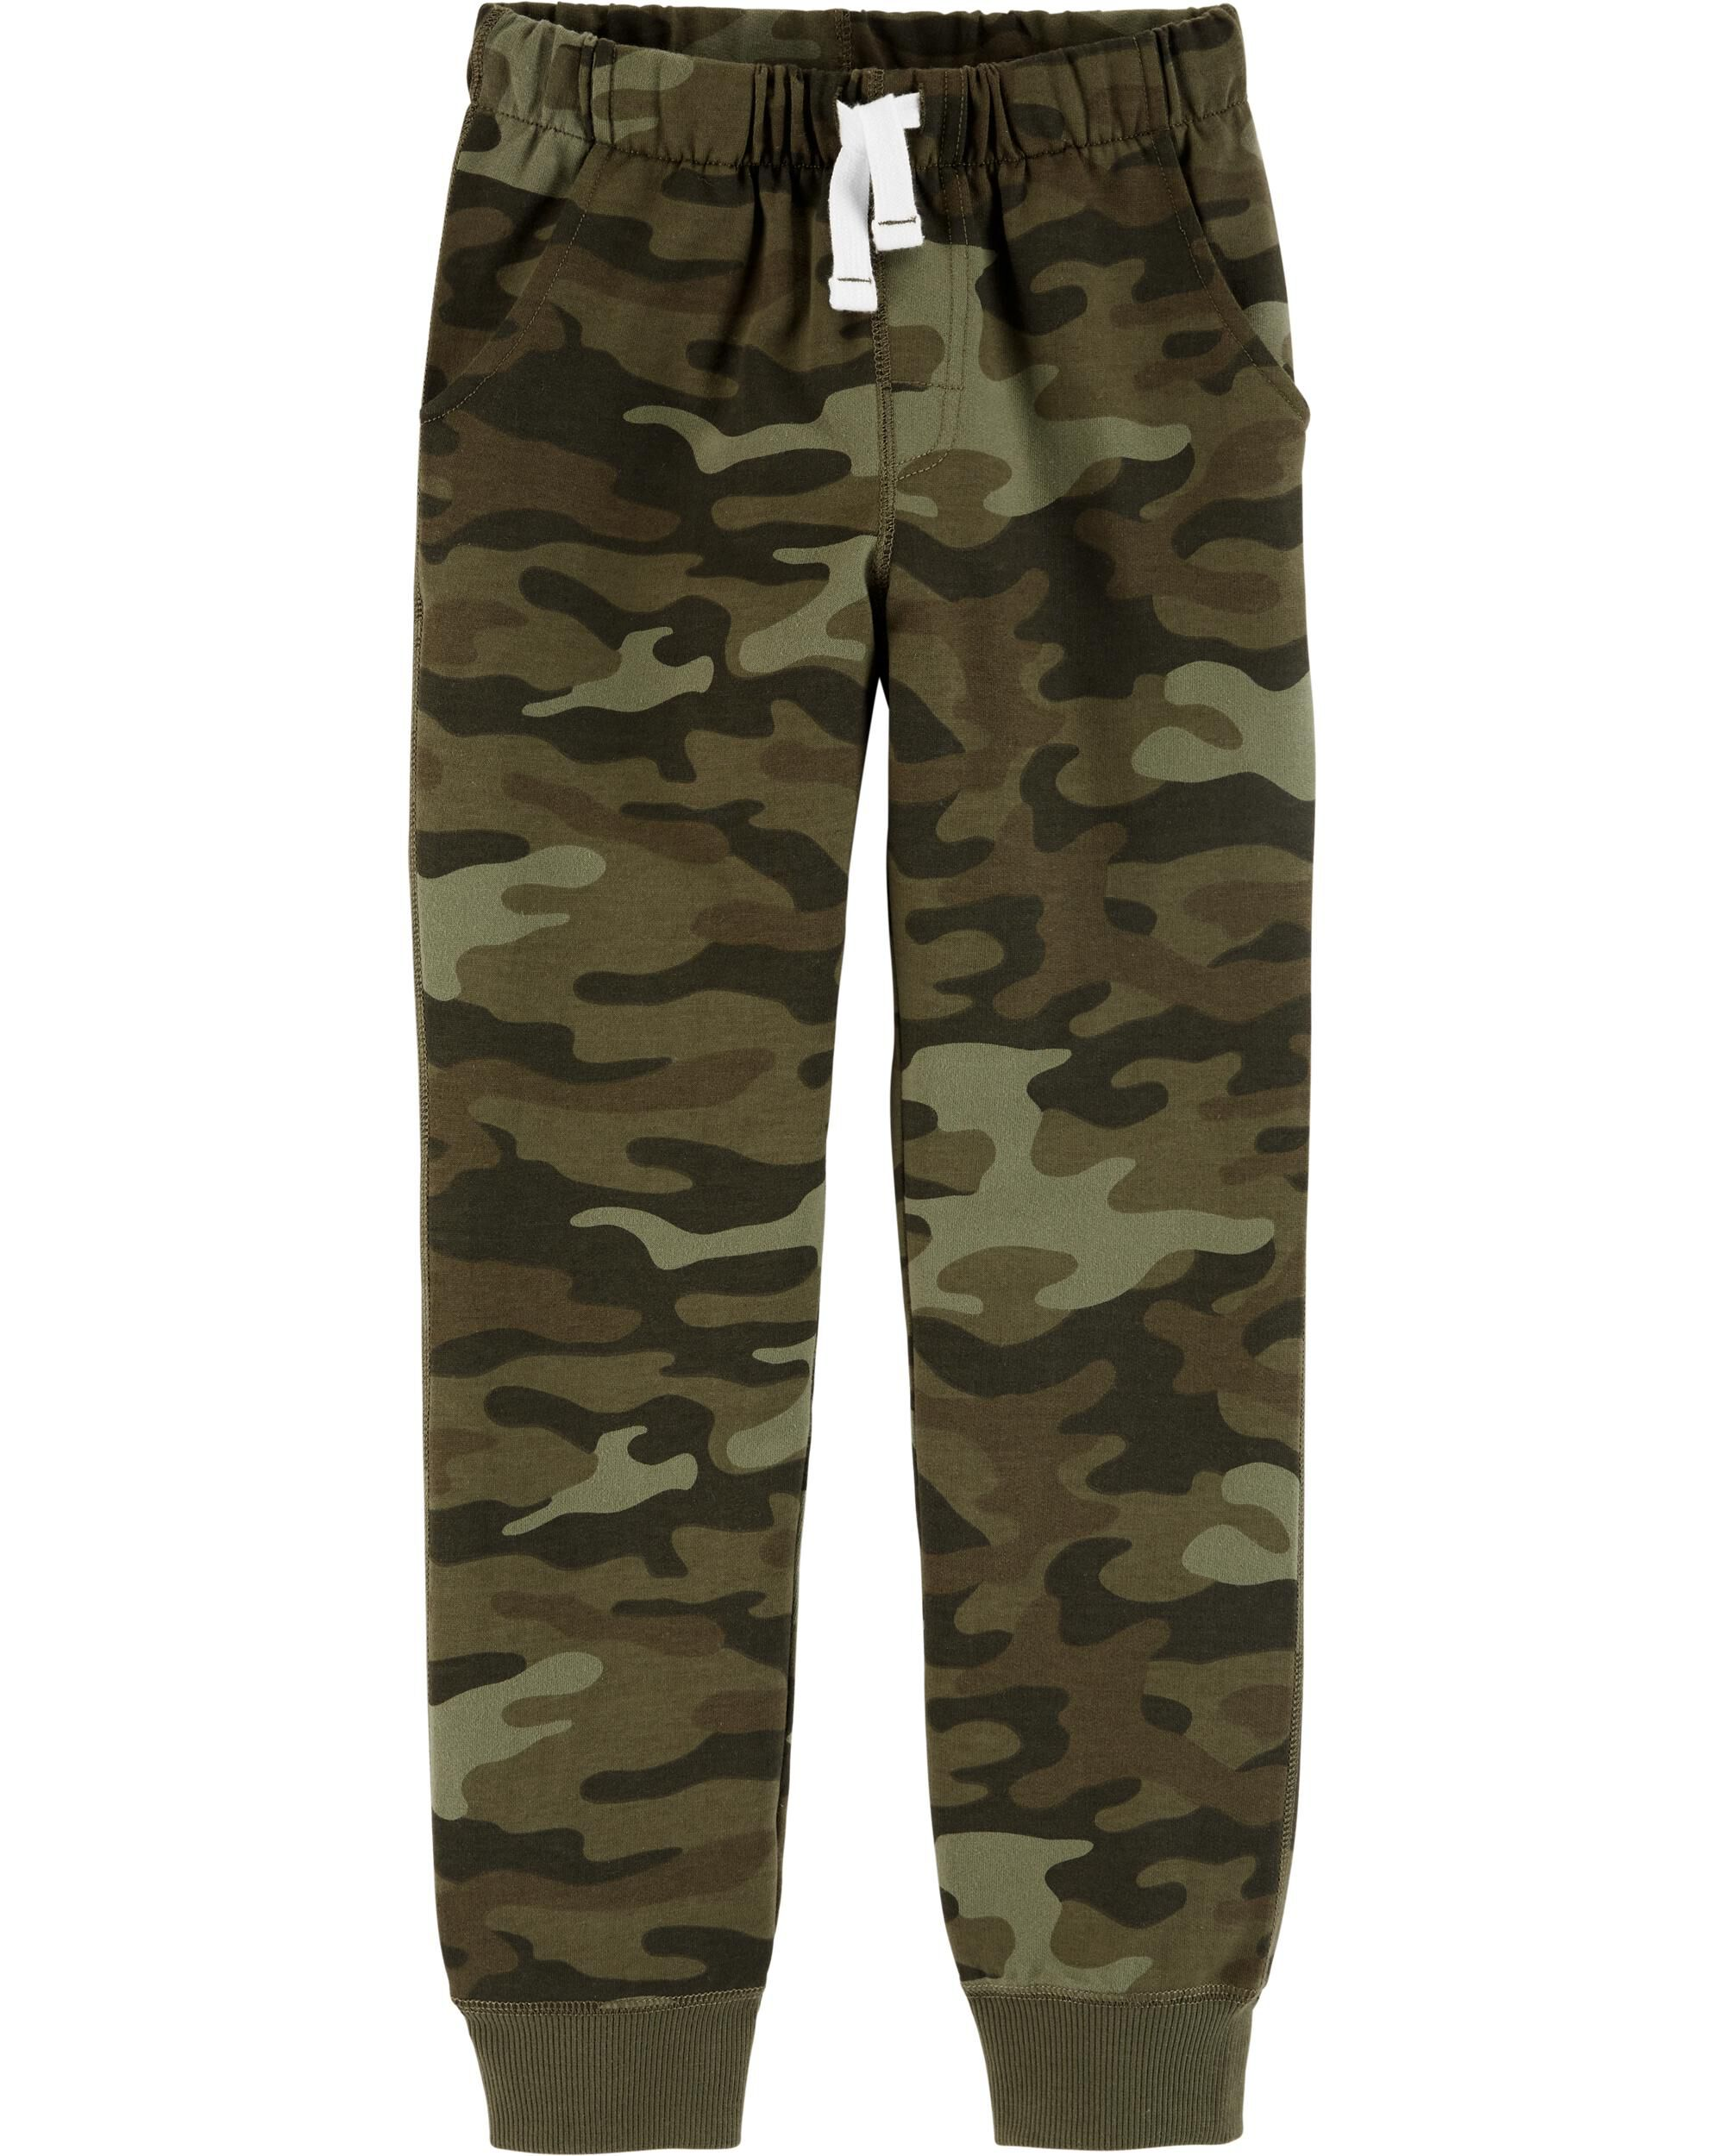 *DOORBUSTER* Camo Pull-On French Terry Joggers